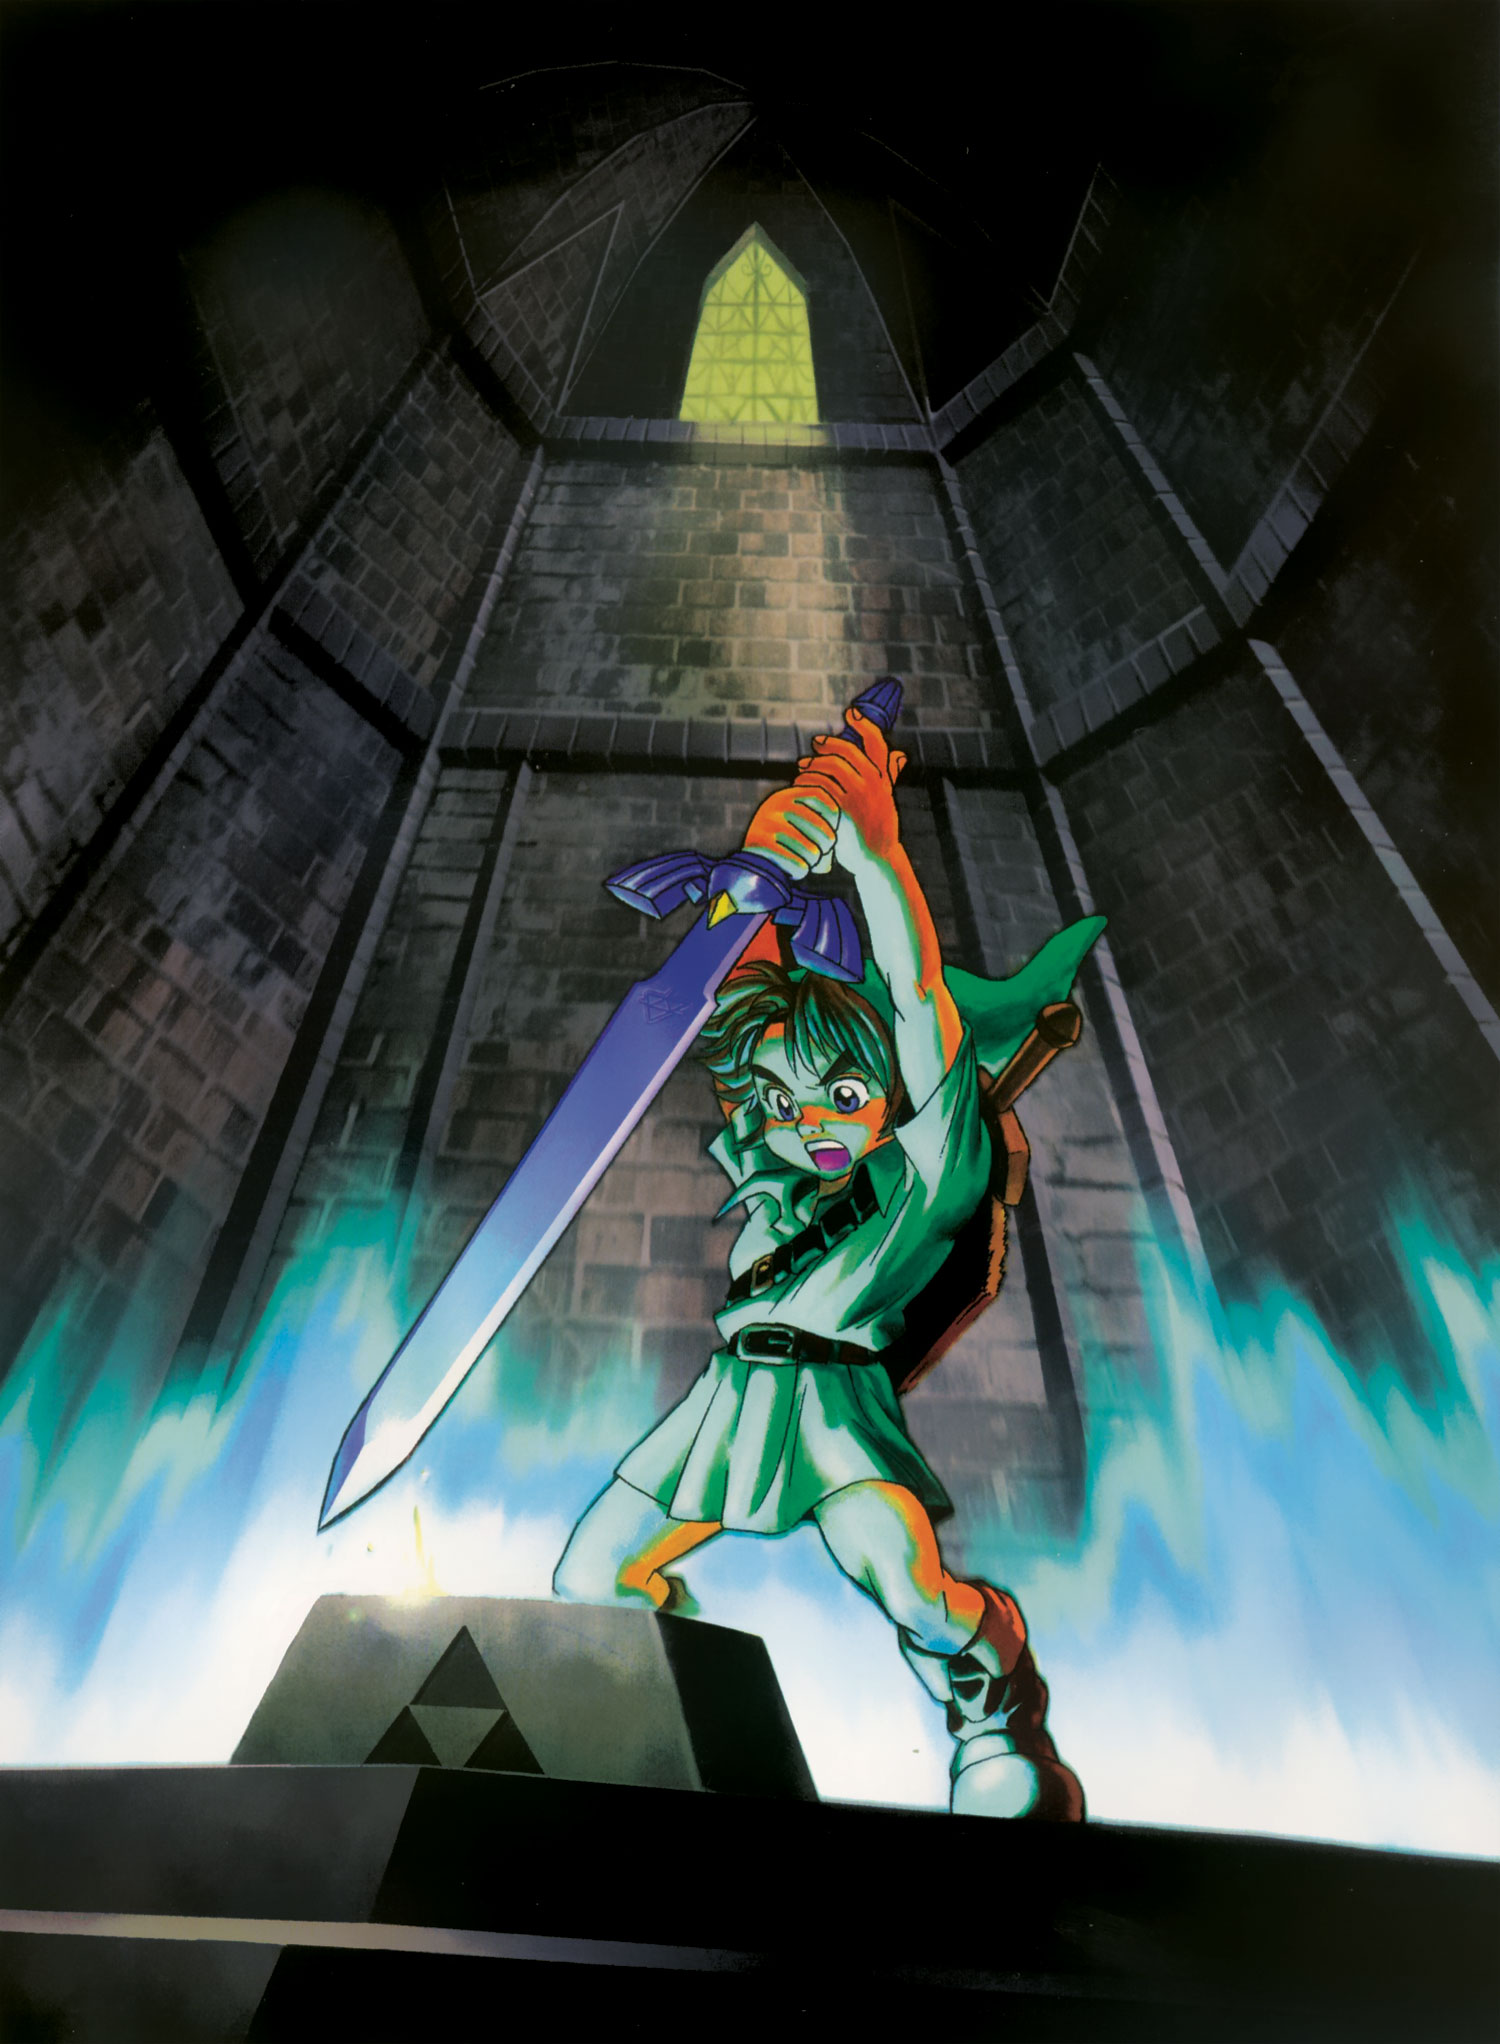 The Legend of Zelda: Ocarina of Time | Zeldapedia | FANDOM